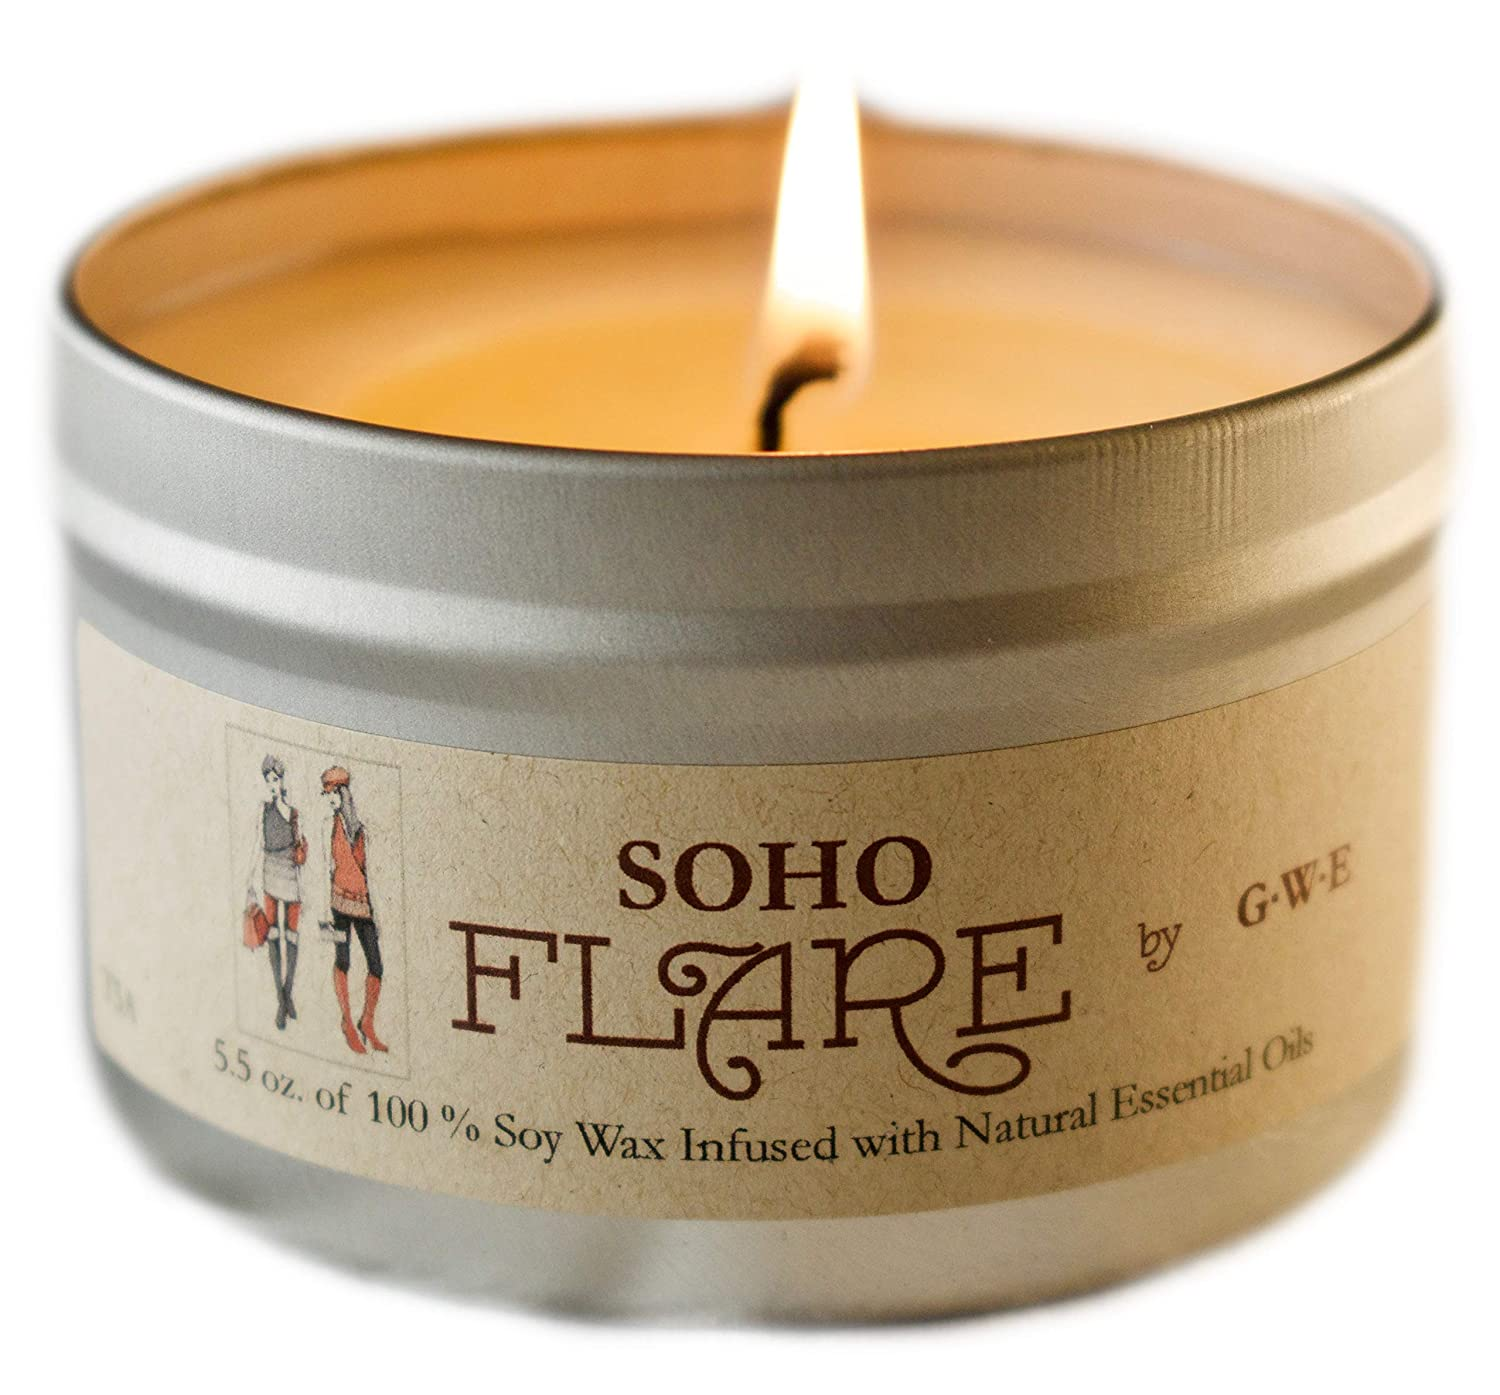 Mint /& Vanilla Relaxation Tangy Aromatherapy Soy Candle for Stress Relief Comfort /& Sleep Mixed Scents of Grapefruit Premium Soy Wax /& All Natural Oil G.W.E SoHo Flare Hand Poured Anxiety